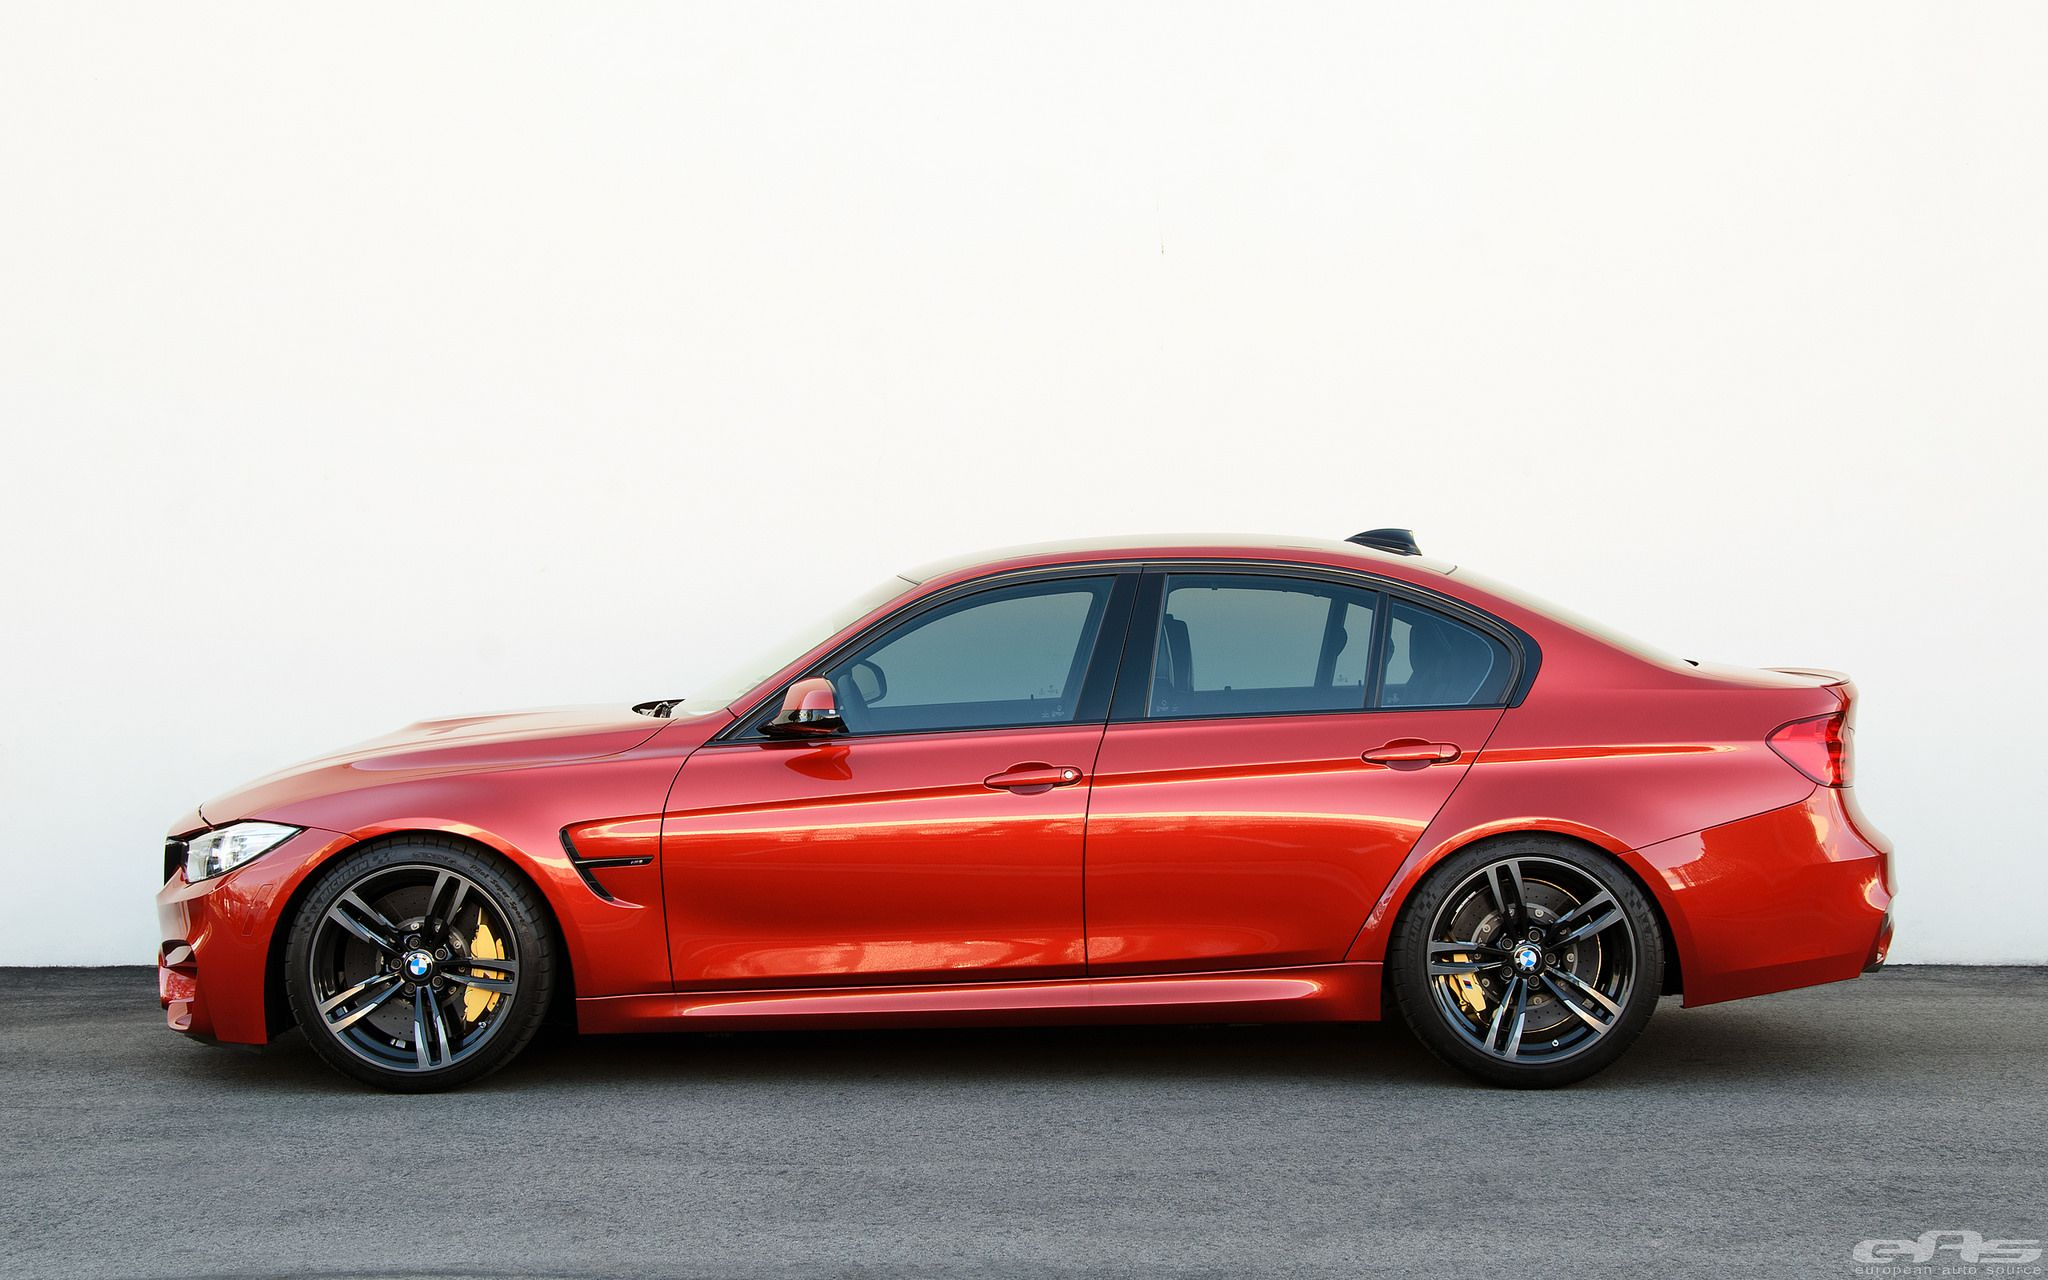 M3 F80 In Sakhir Orange On H R Springs With 15mm Front And 12mm Rear